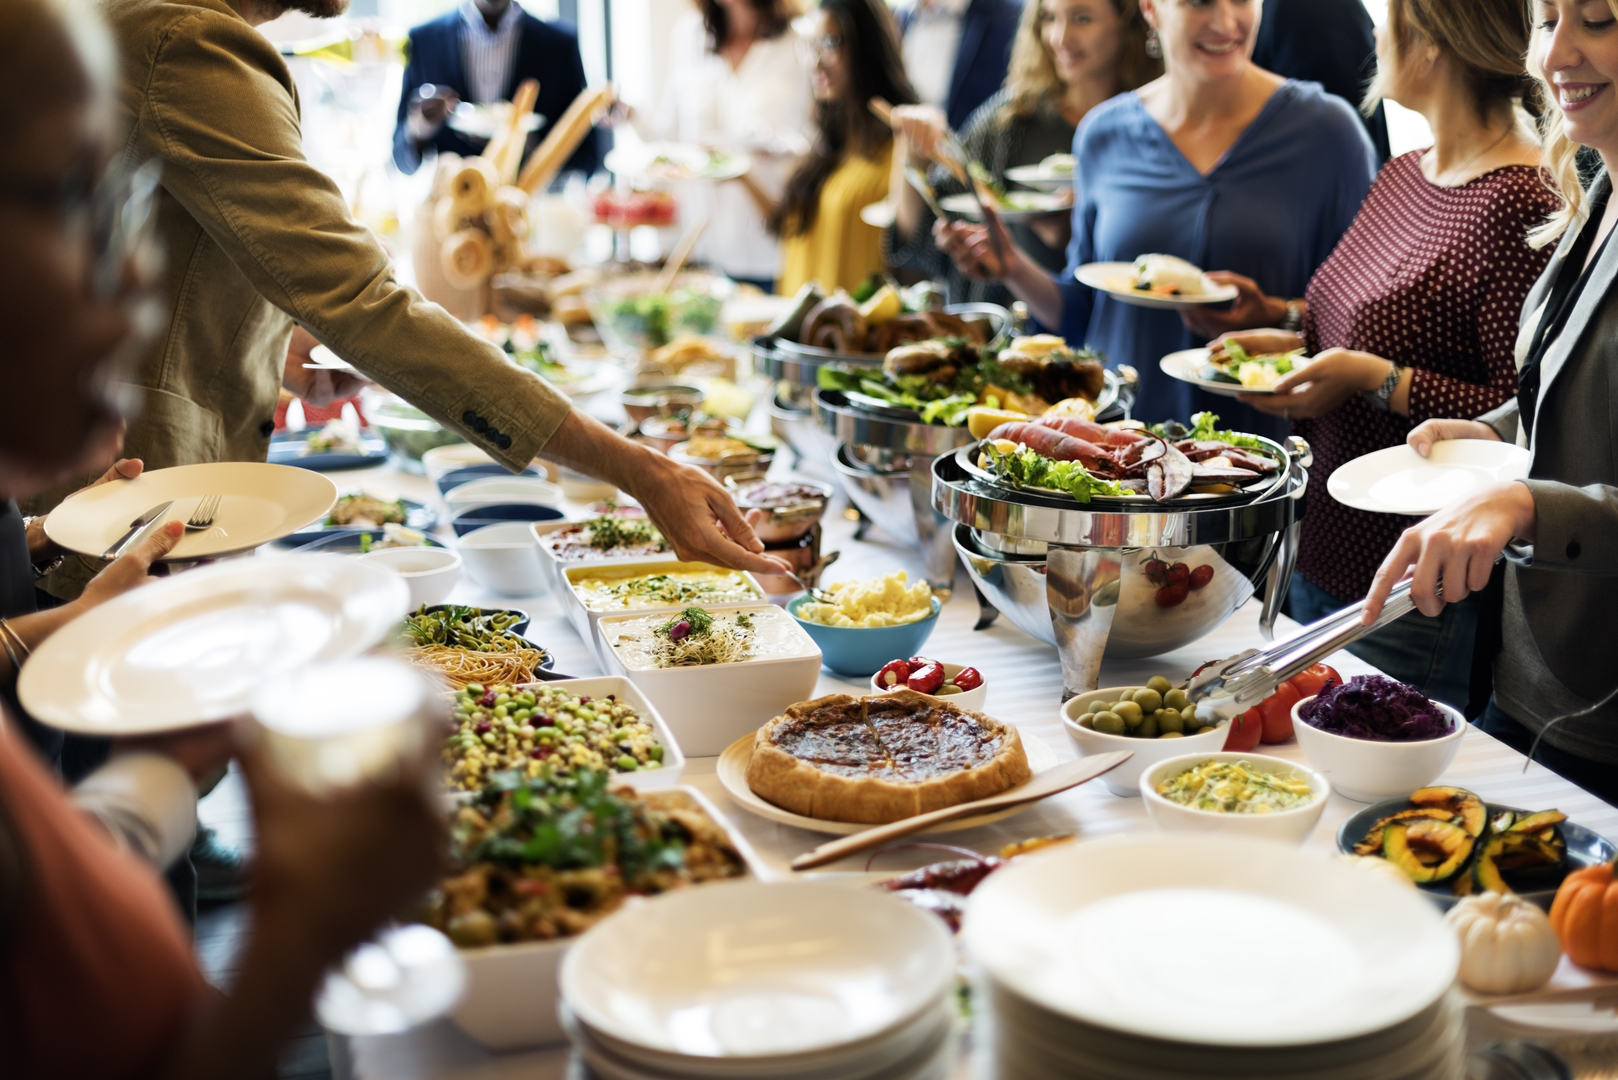 Lunchbuffet Amsterdam Buffet Catering Partyservice Hapjes Aan Huis